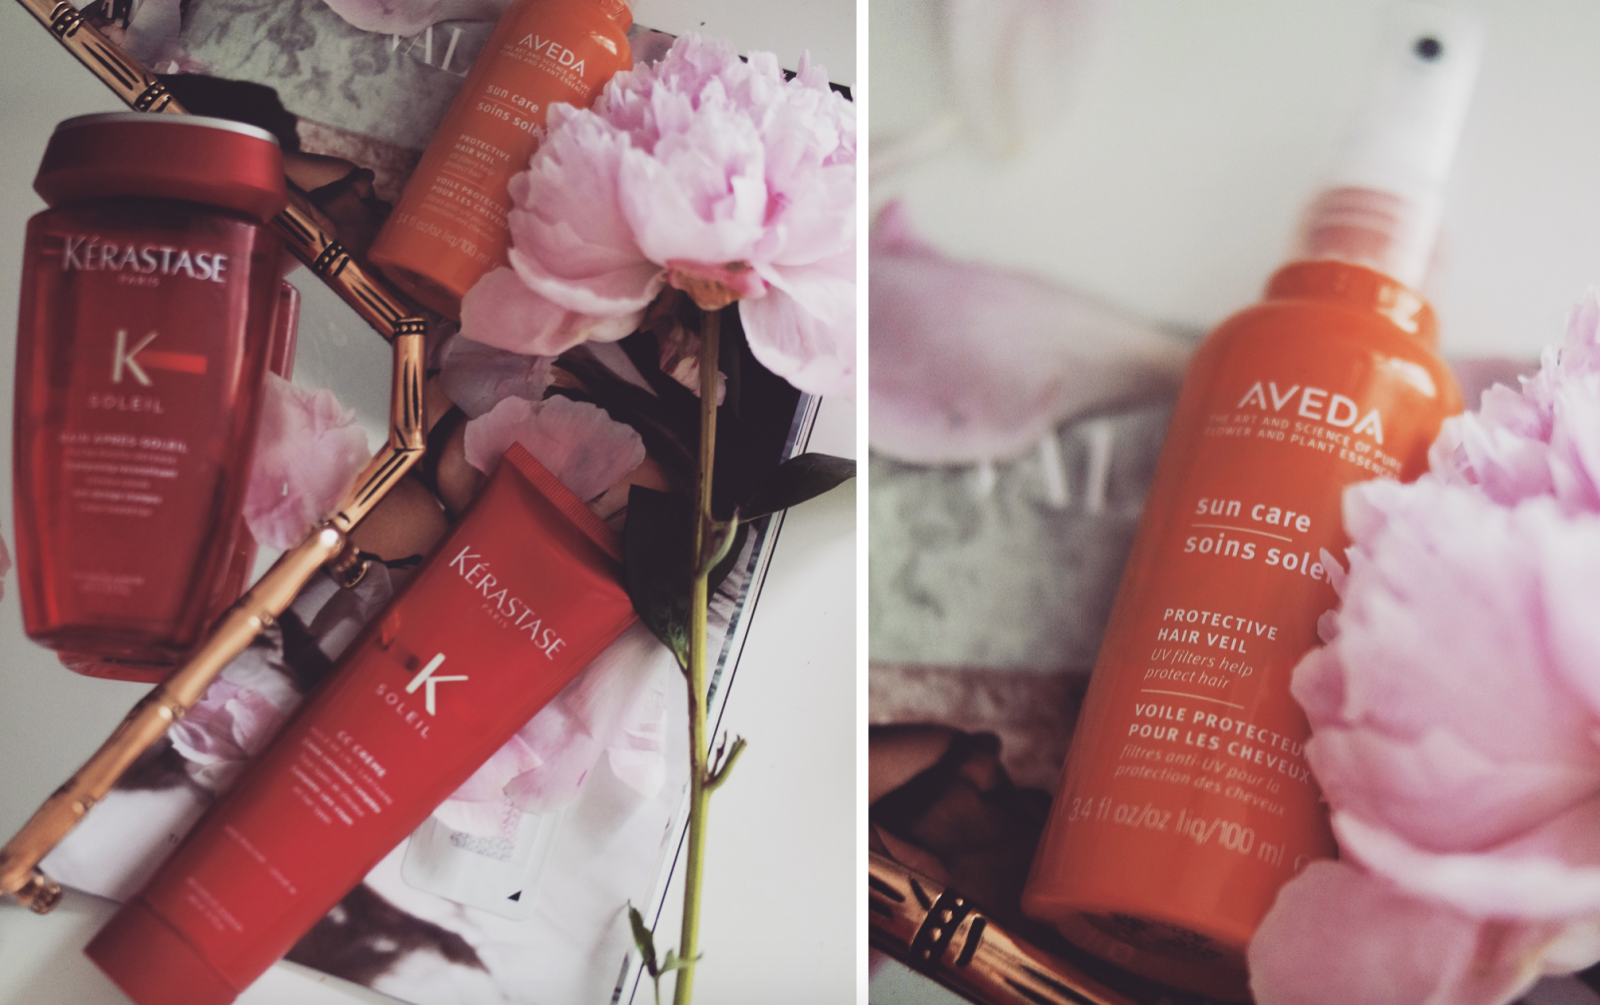 Travel Beauty Essentials - Kerastase Soleil Range